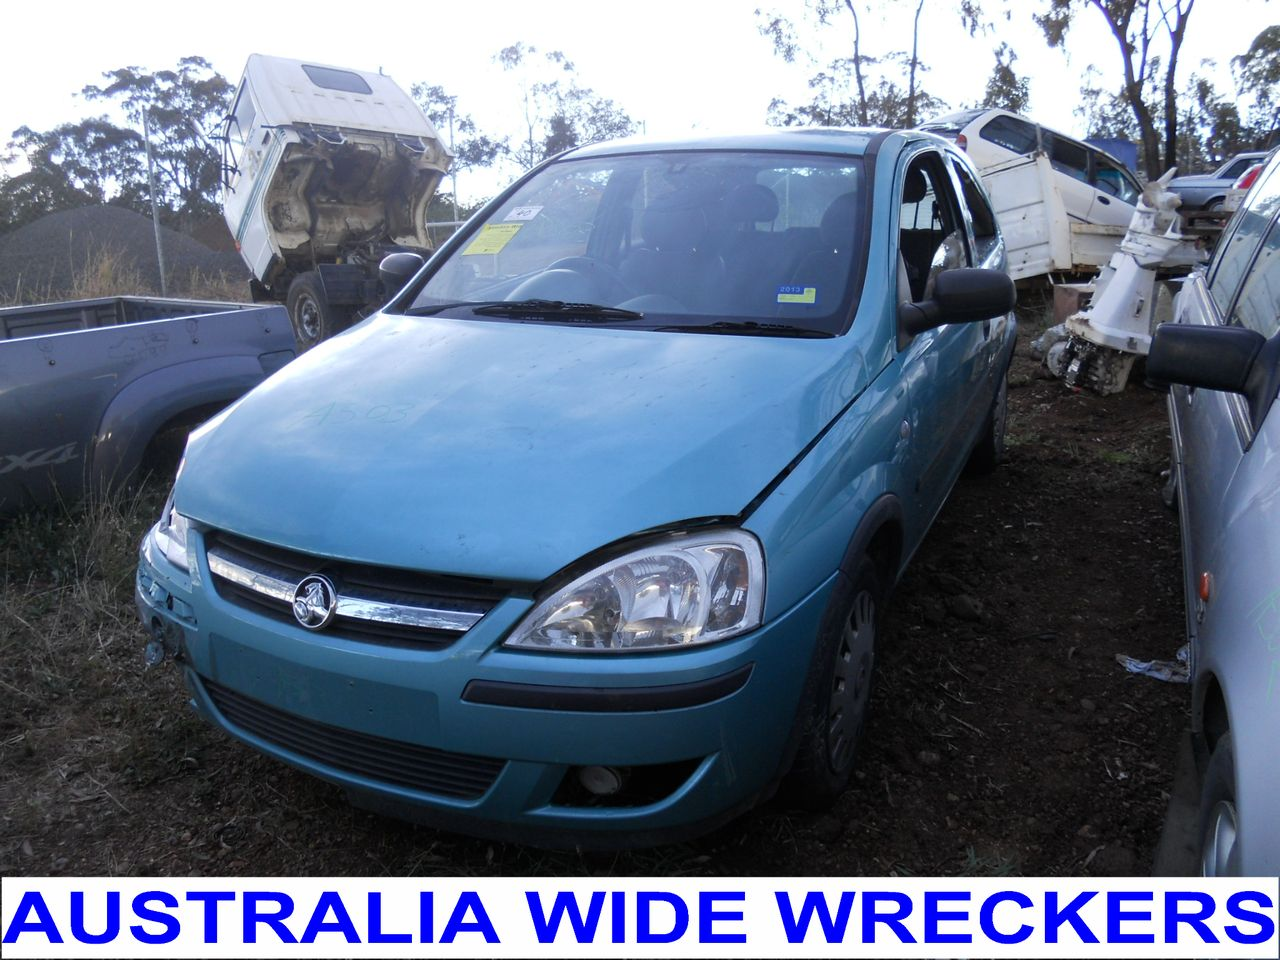 HOLDEN-BARINA-XC-2001-2005-PASSANGERS-WINDOW-SWITCH-WRECKING-WHOLE-CAR